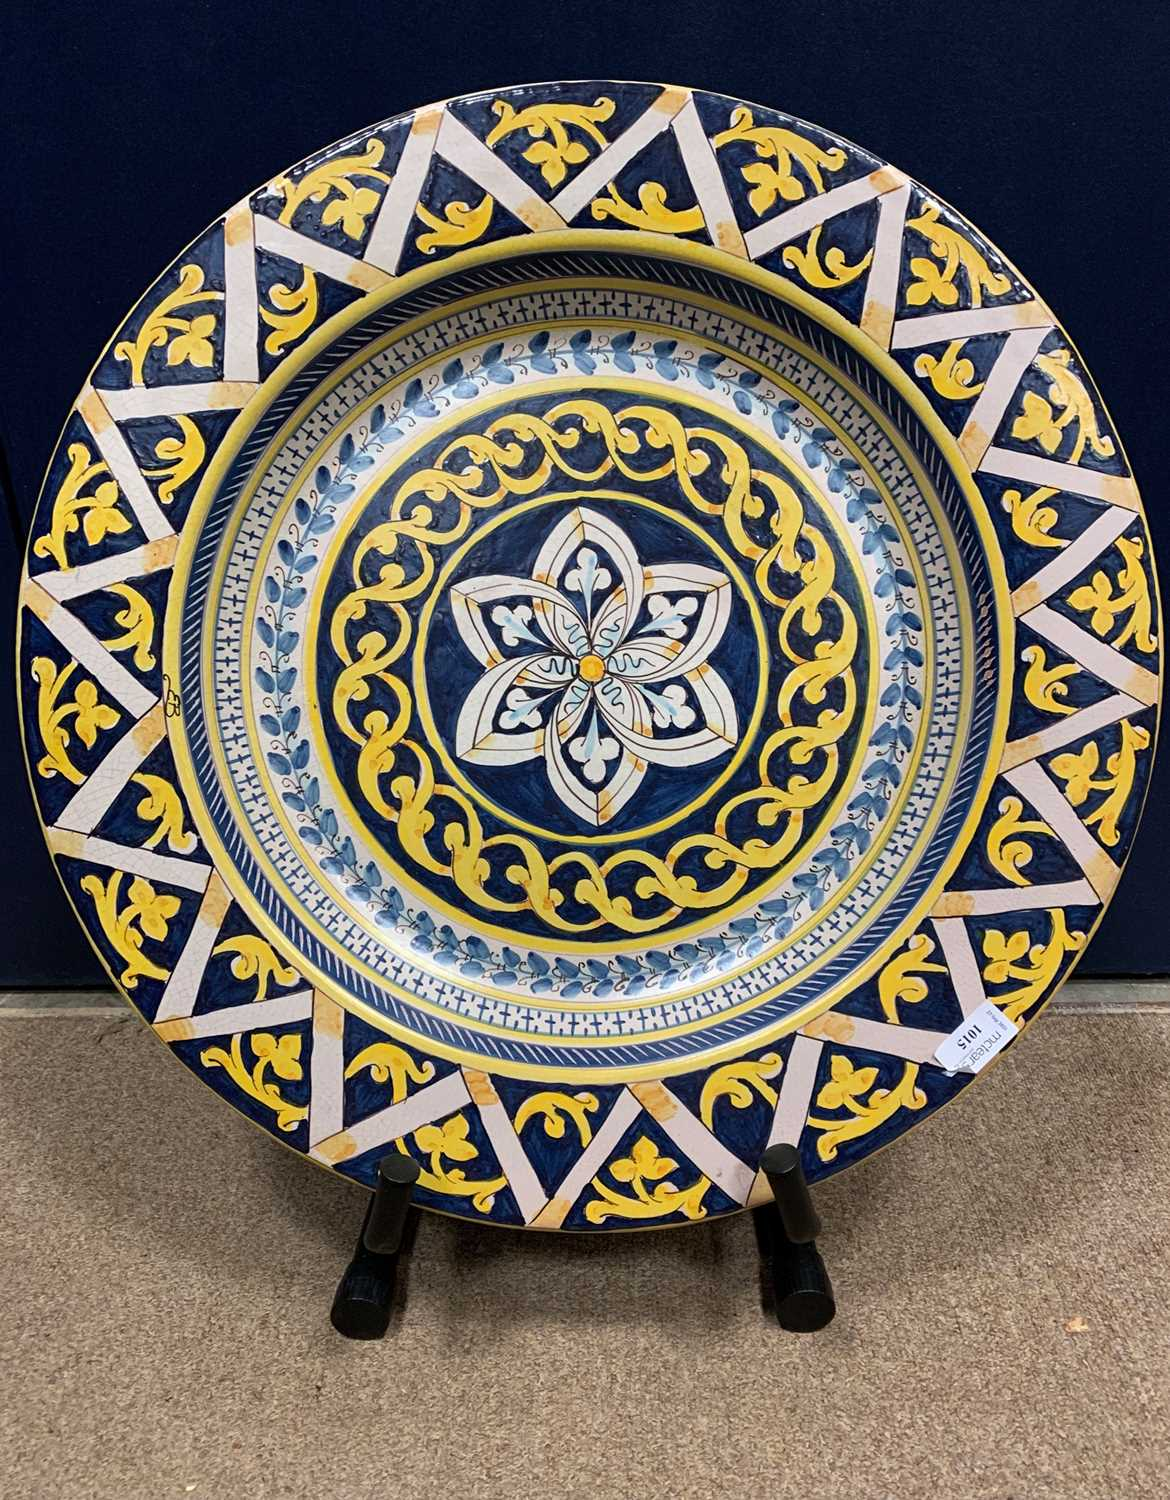 Lot 1015 - A 20TH CENTURY CONTINENTAL MAJOLICA CHARGER